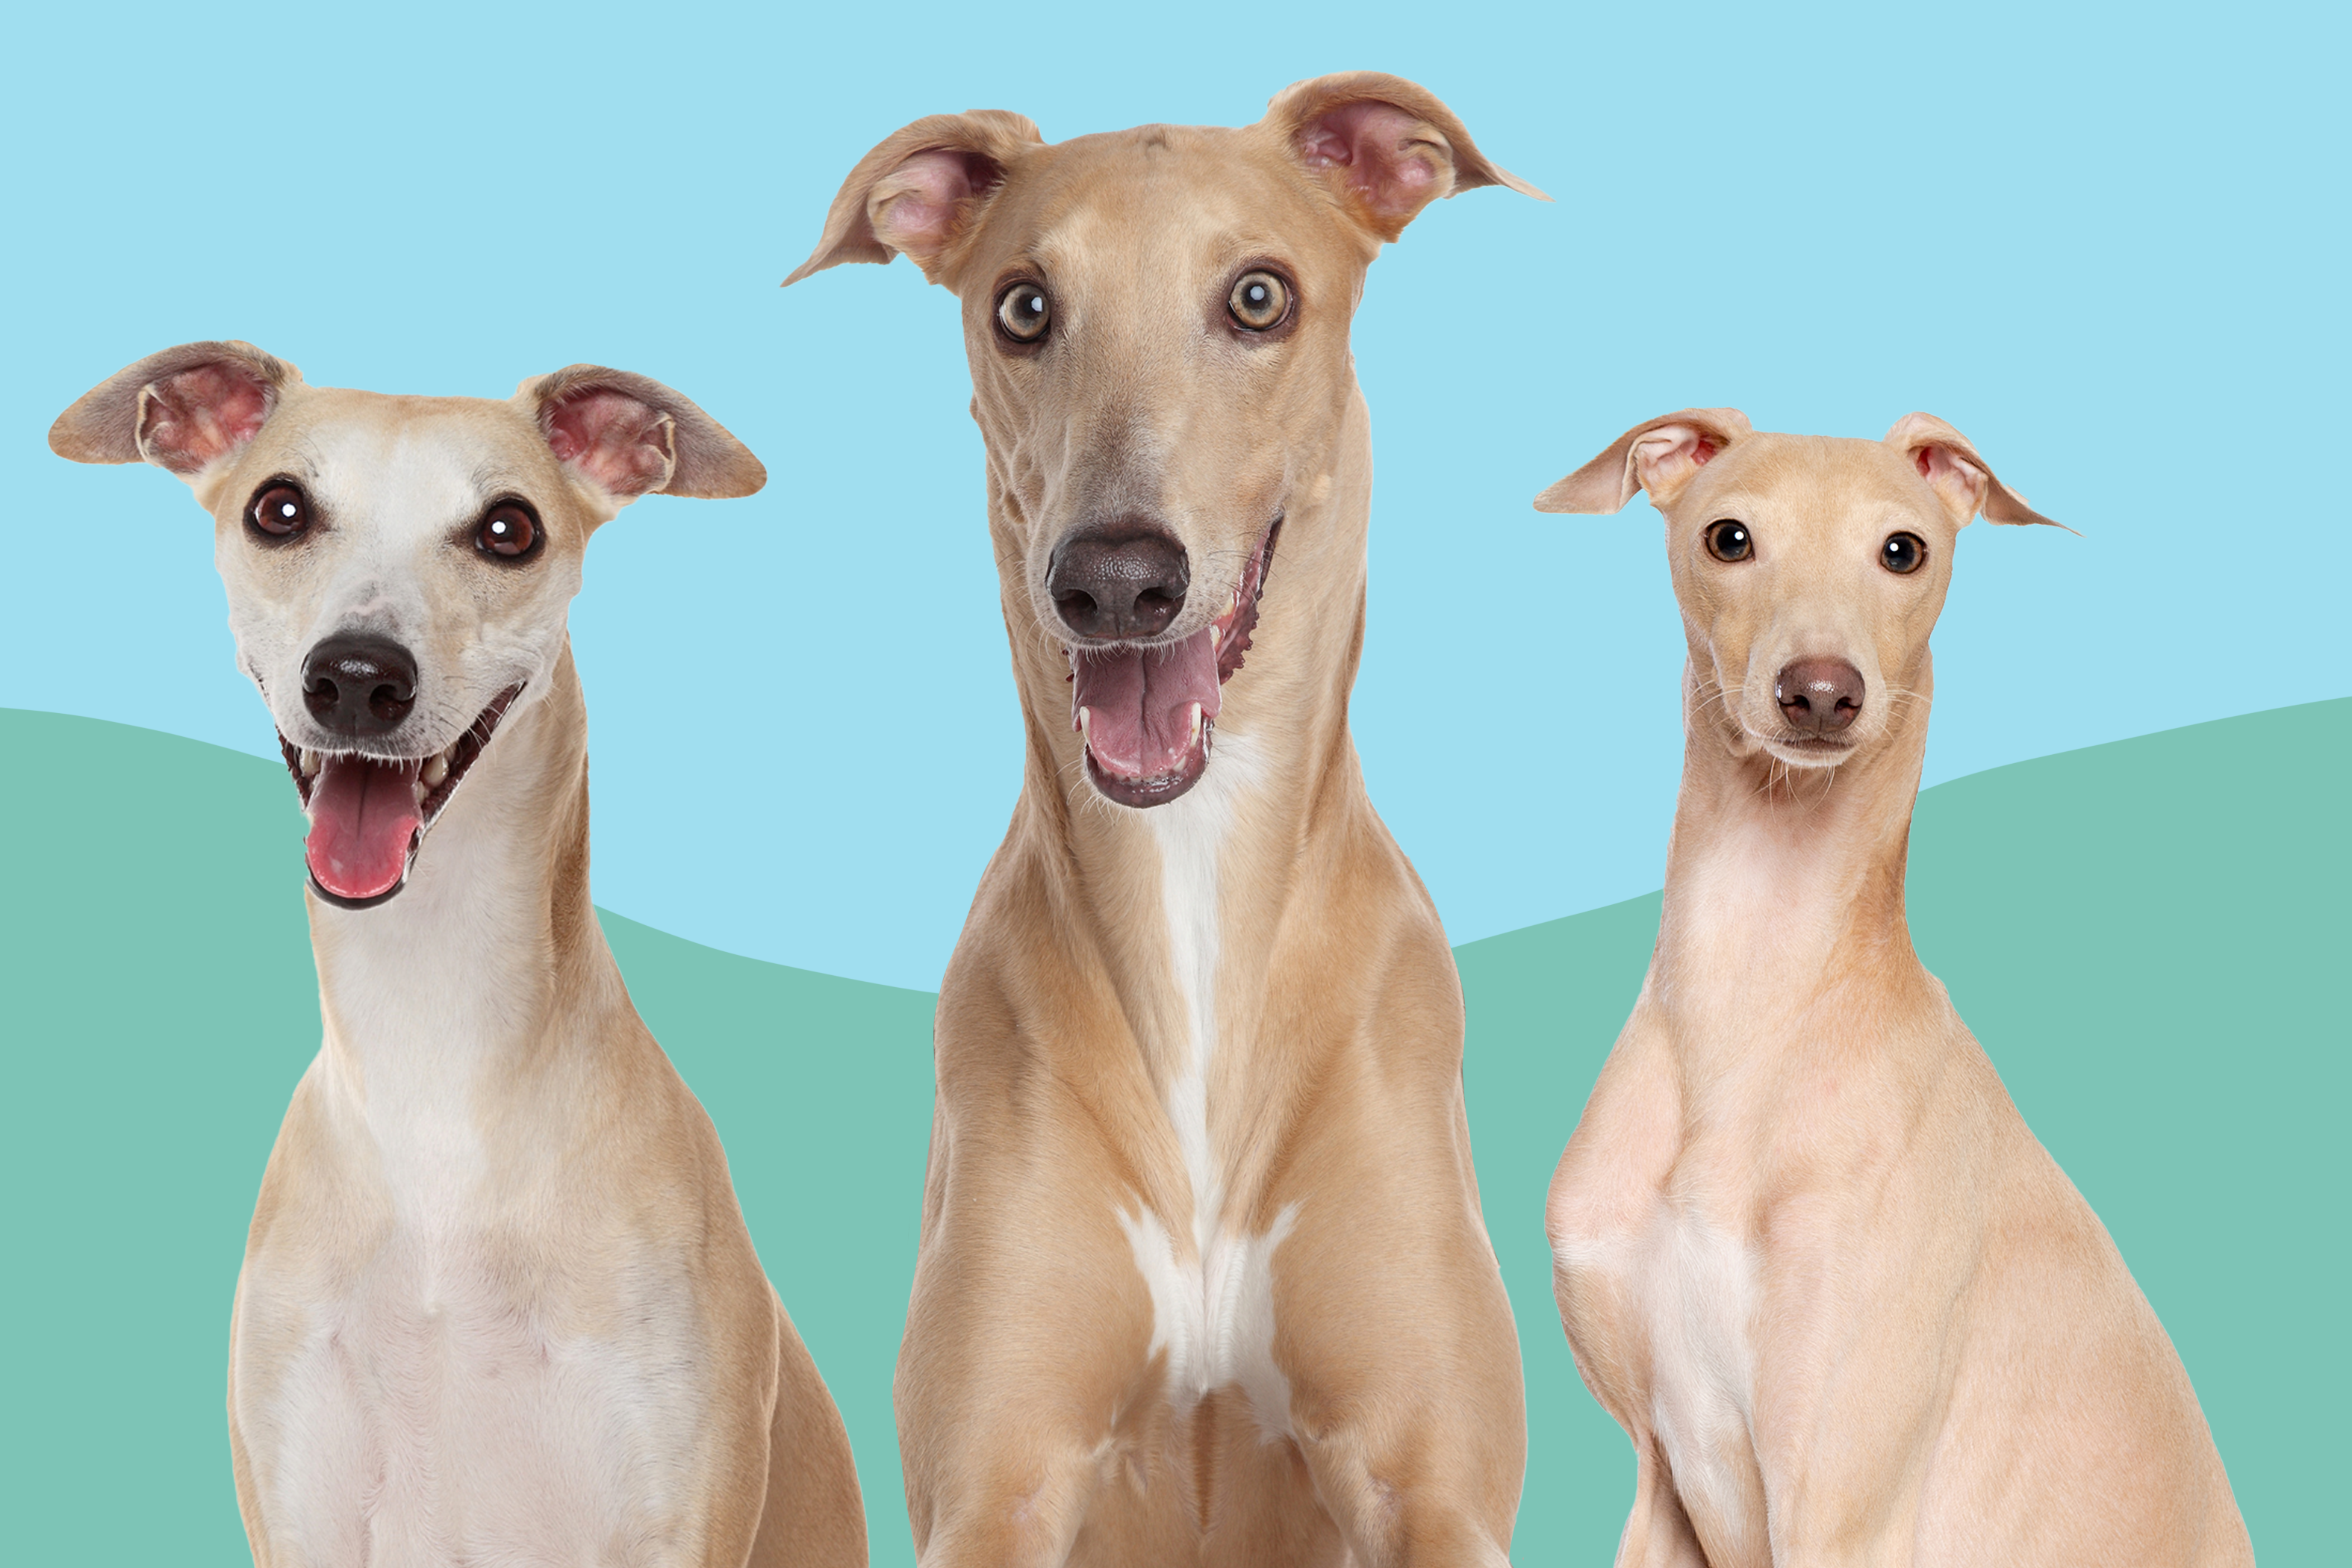 greyhound vs italian greyhound vs whippet dog breed comparison three dogs on a green and blue background